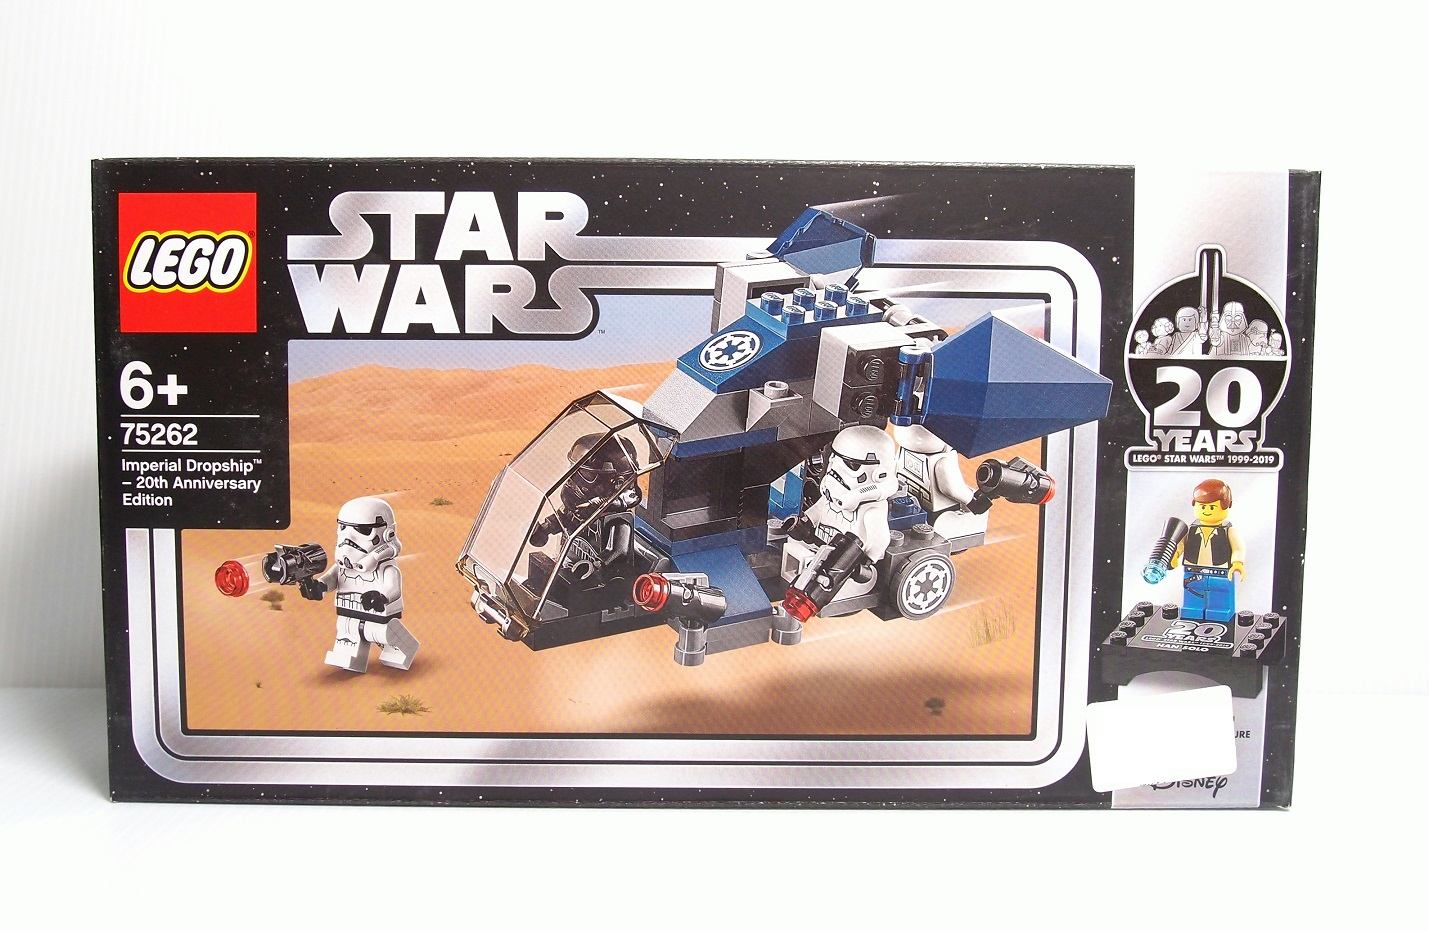 2019 Star Wars 75262 Imperial Dropship – 20th Anniversary Edition